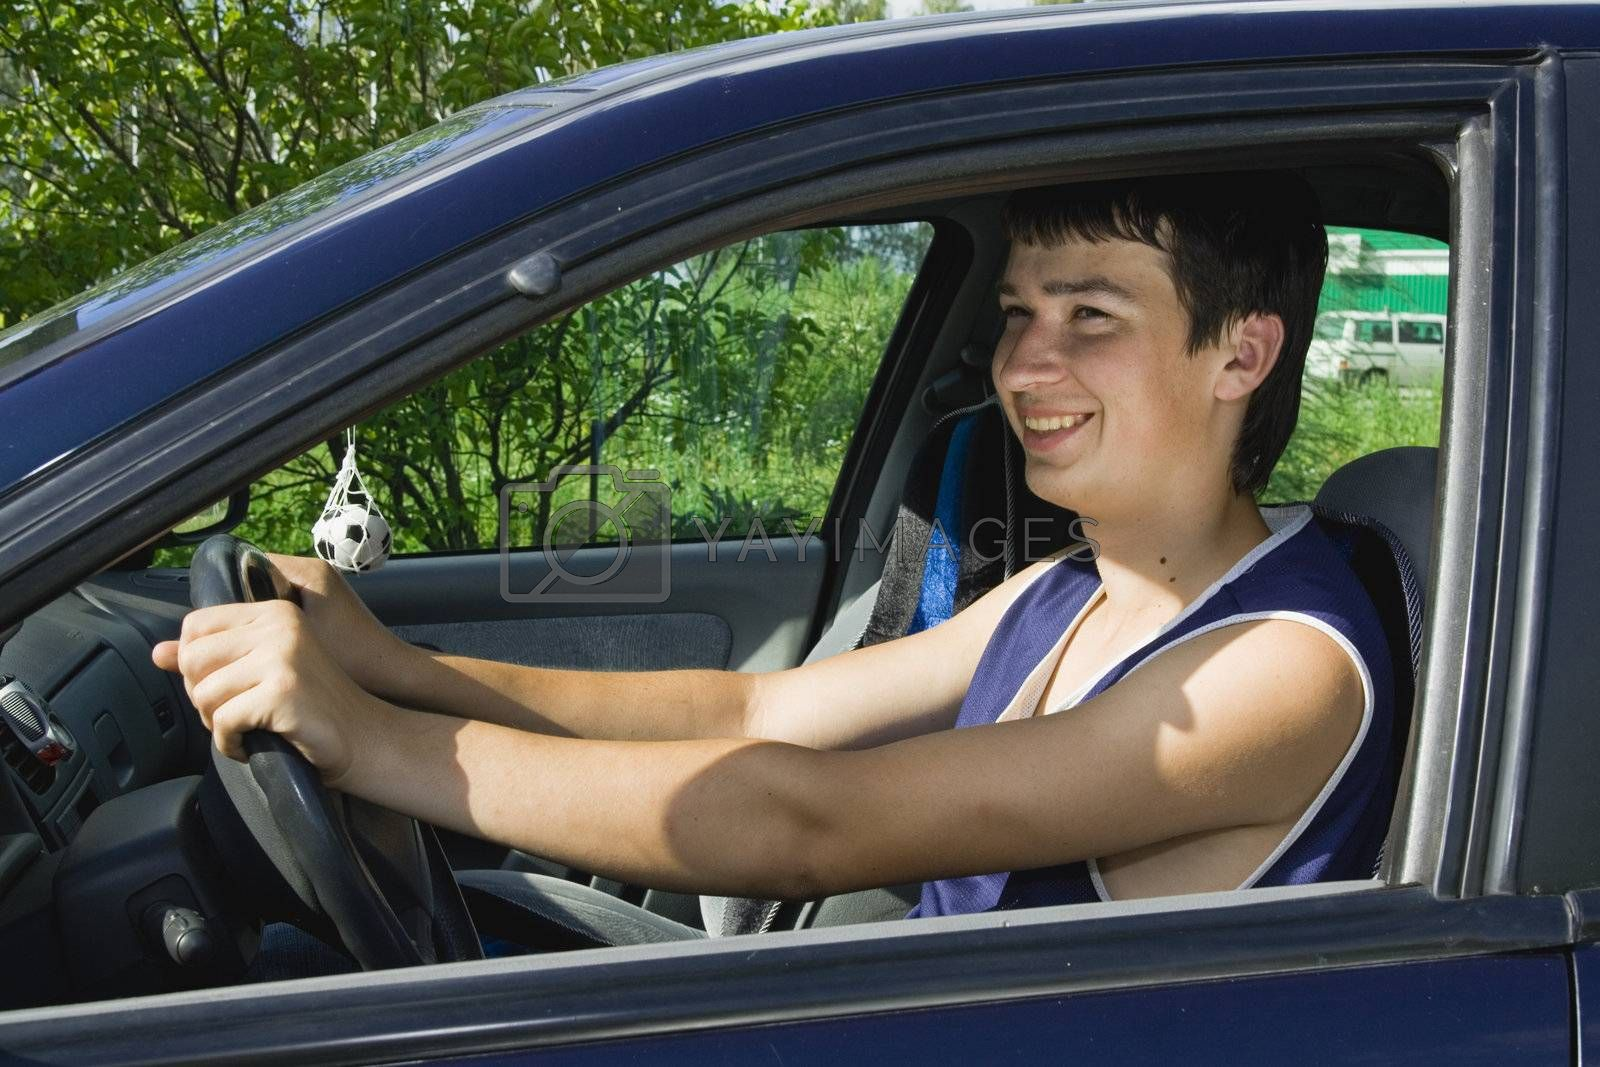 A young man smiling as he sits in a blue car